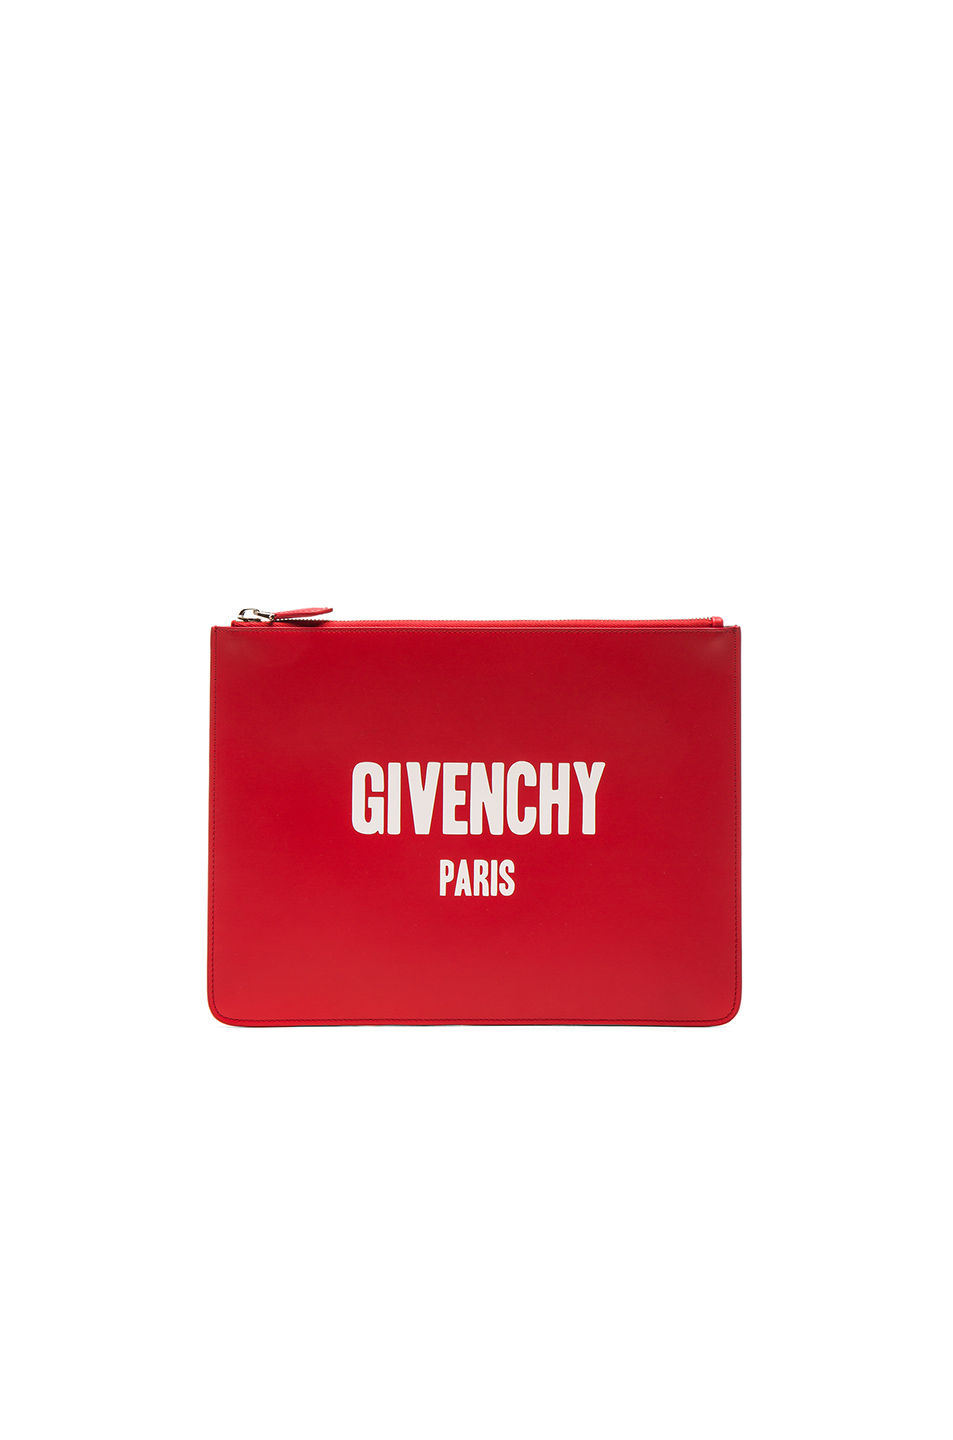 Givenchy Paris Print Pouch in Red